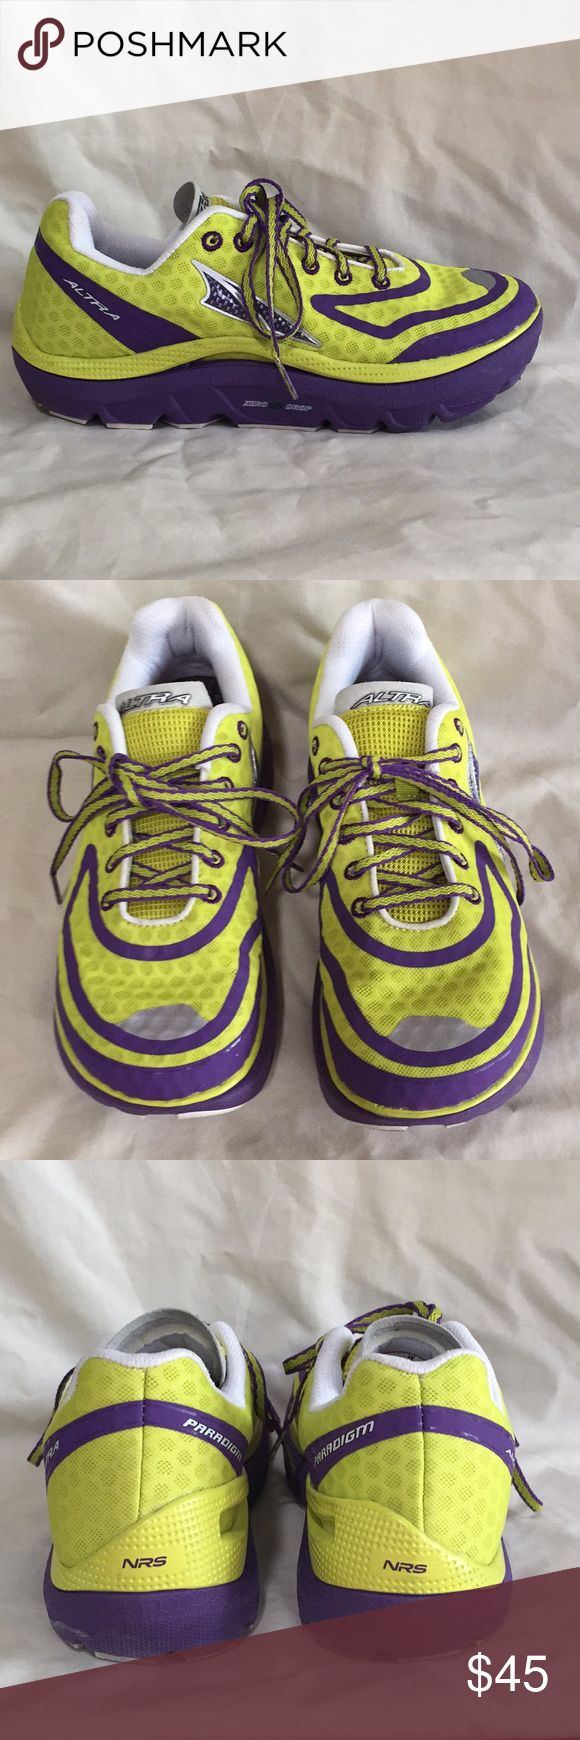 Altra Paradigm running shoes Feature Altra's 'zero-drop' platform and max cushioning in a lightweight design.  Foot-shaped toe box.  Color: sulphur/grape.  Worn once, very clean (soles show slightest wear).  Size US 7/EU 38/UK 5. Altra Shoes Athletic Shoes